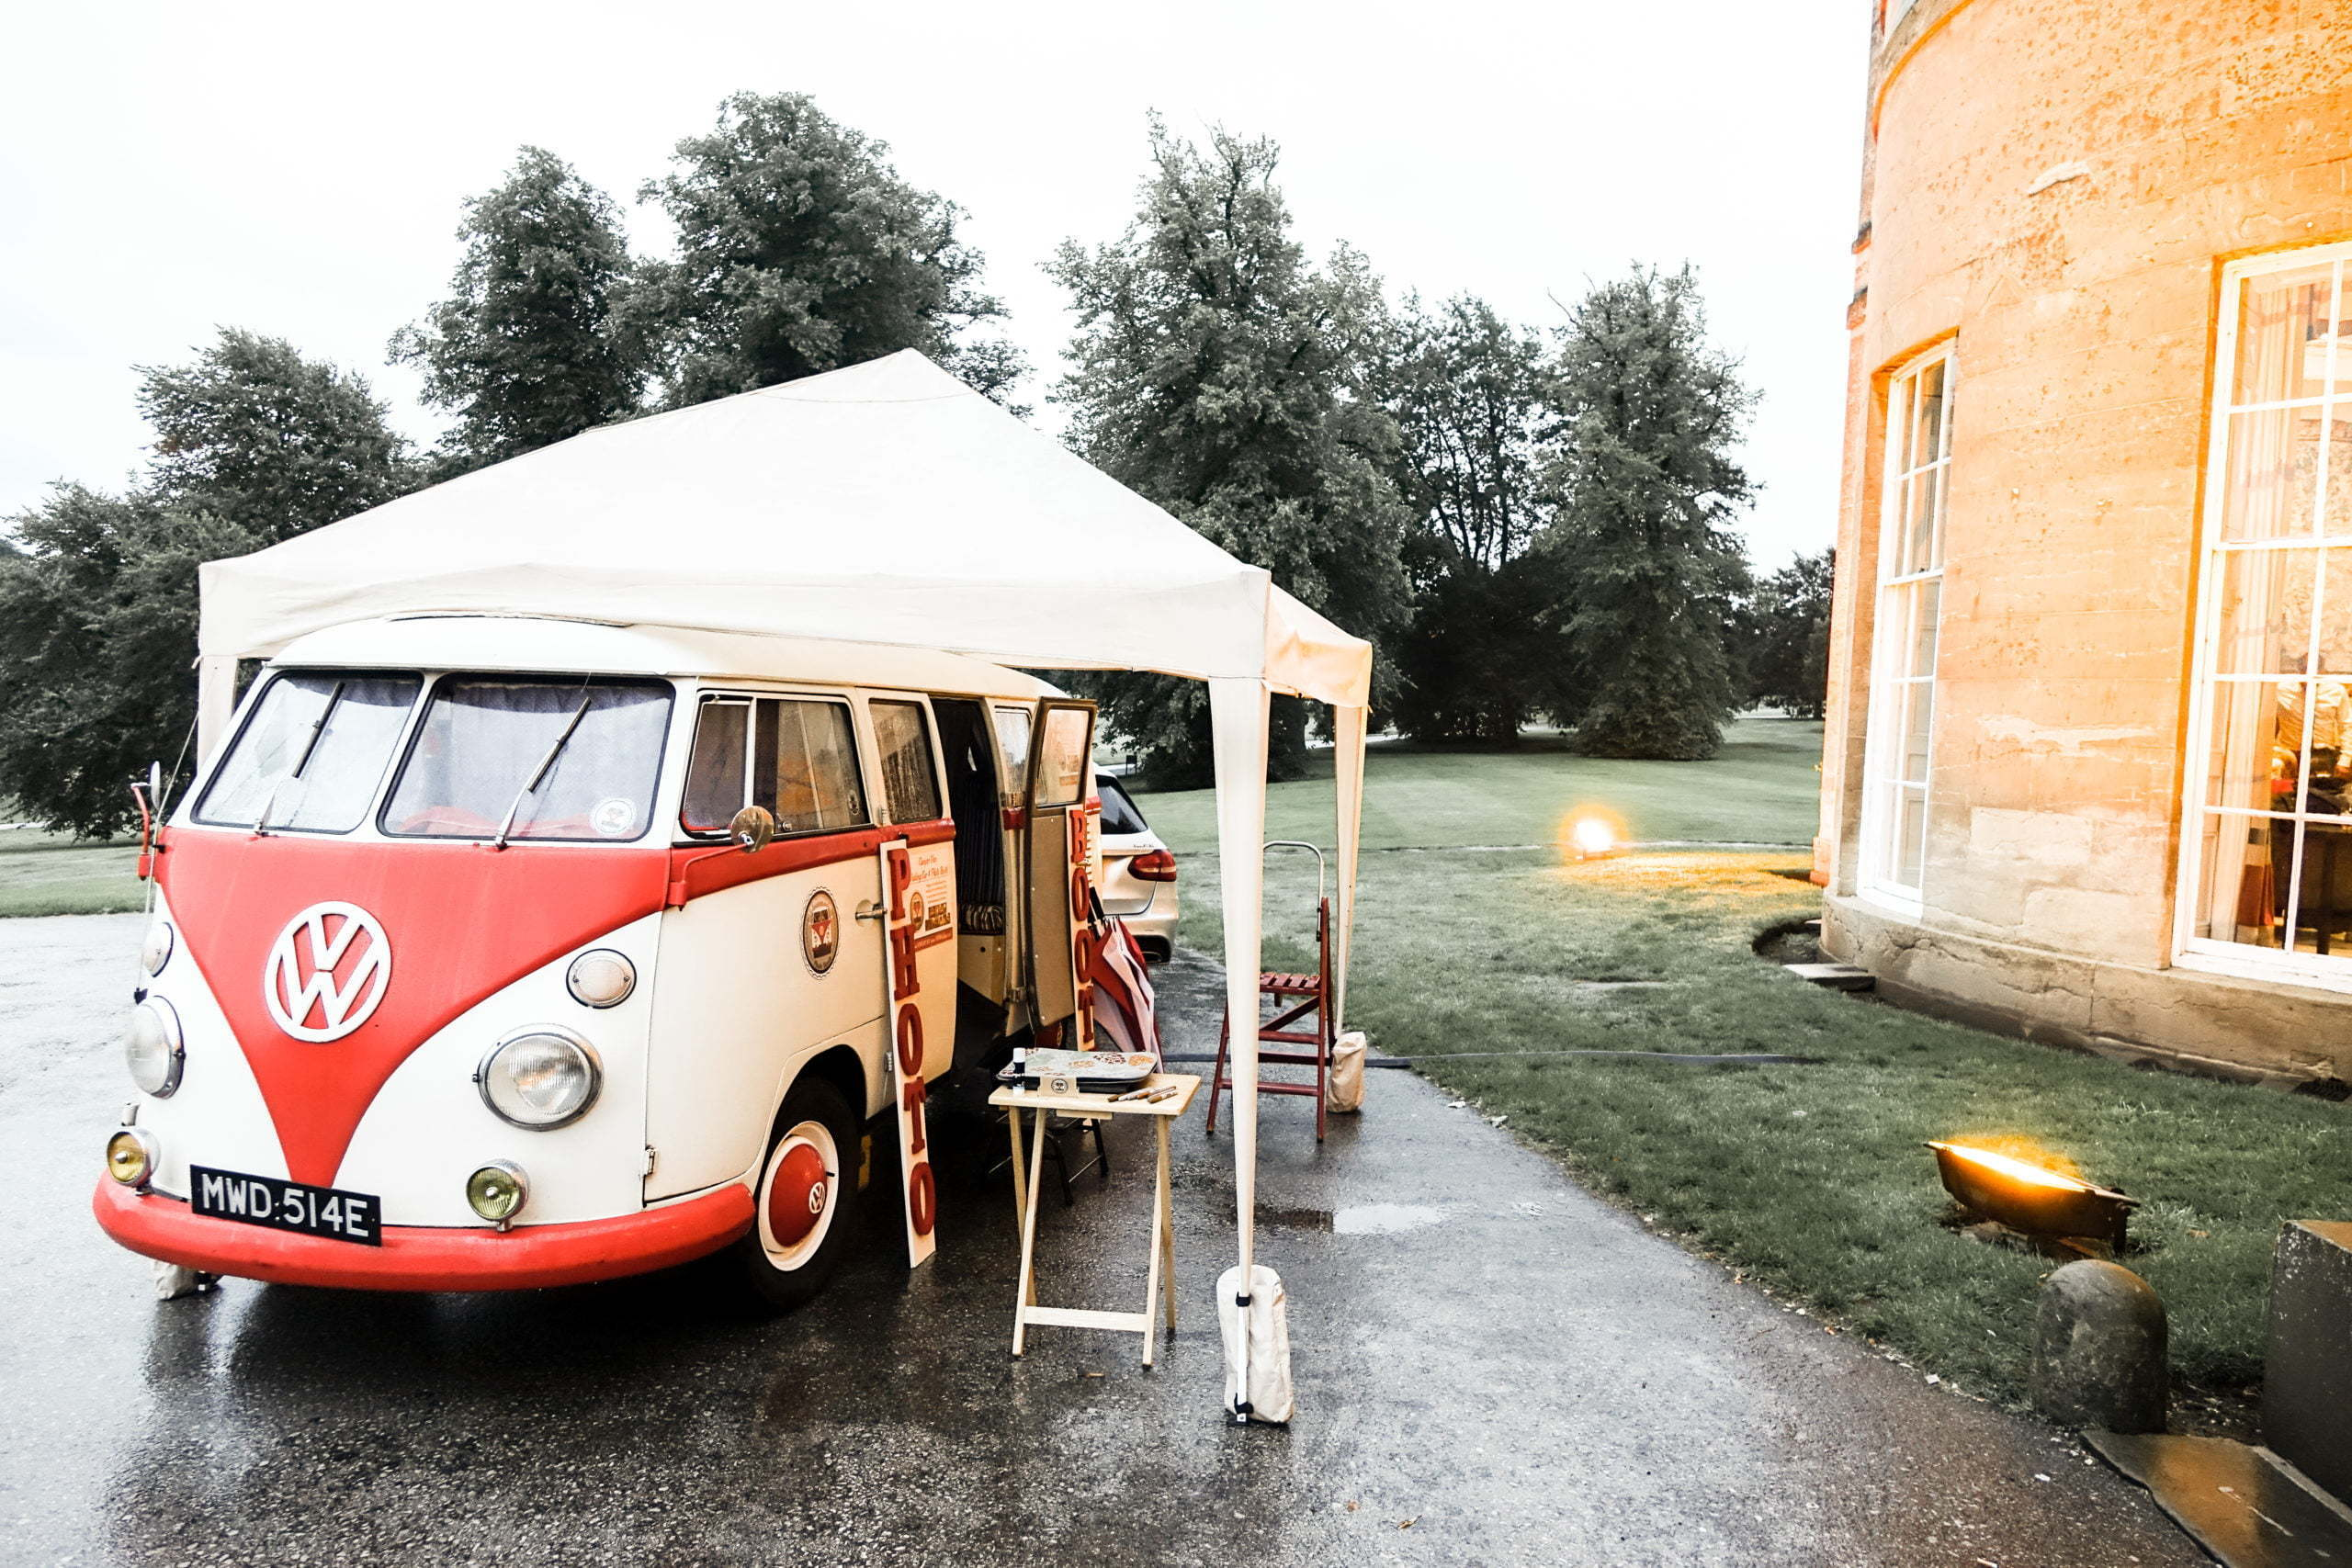 VW Camperbooth on a rainy day